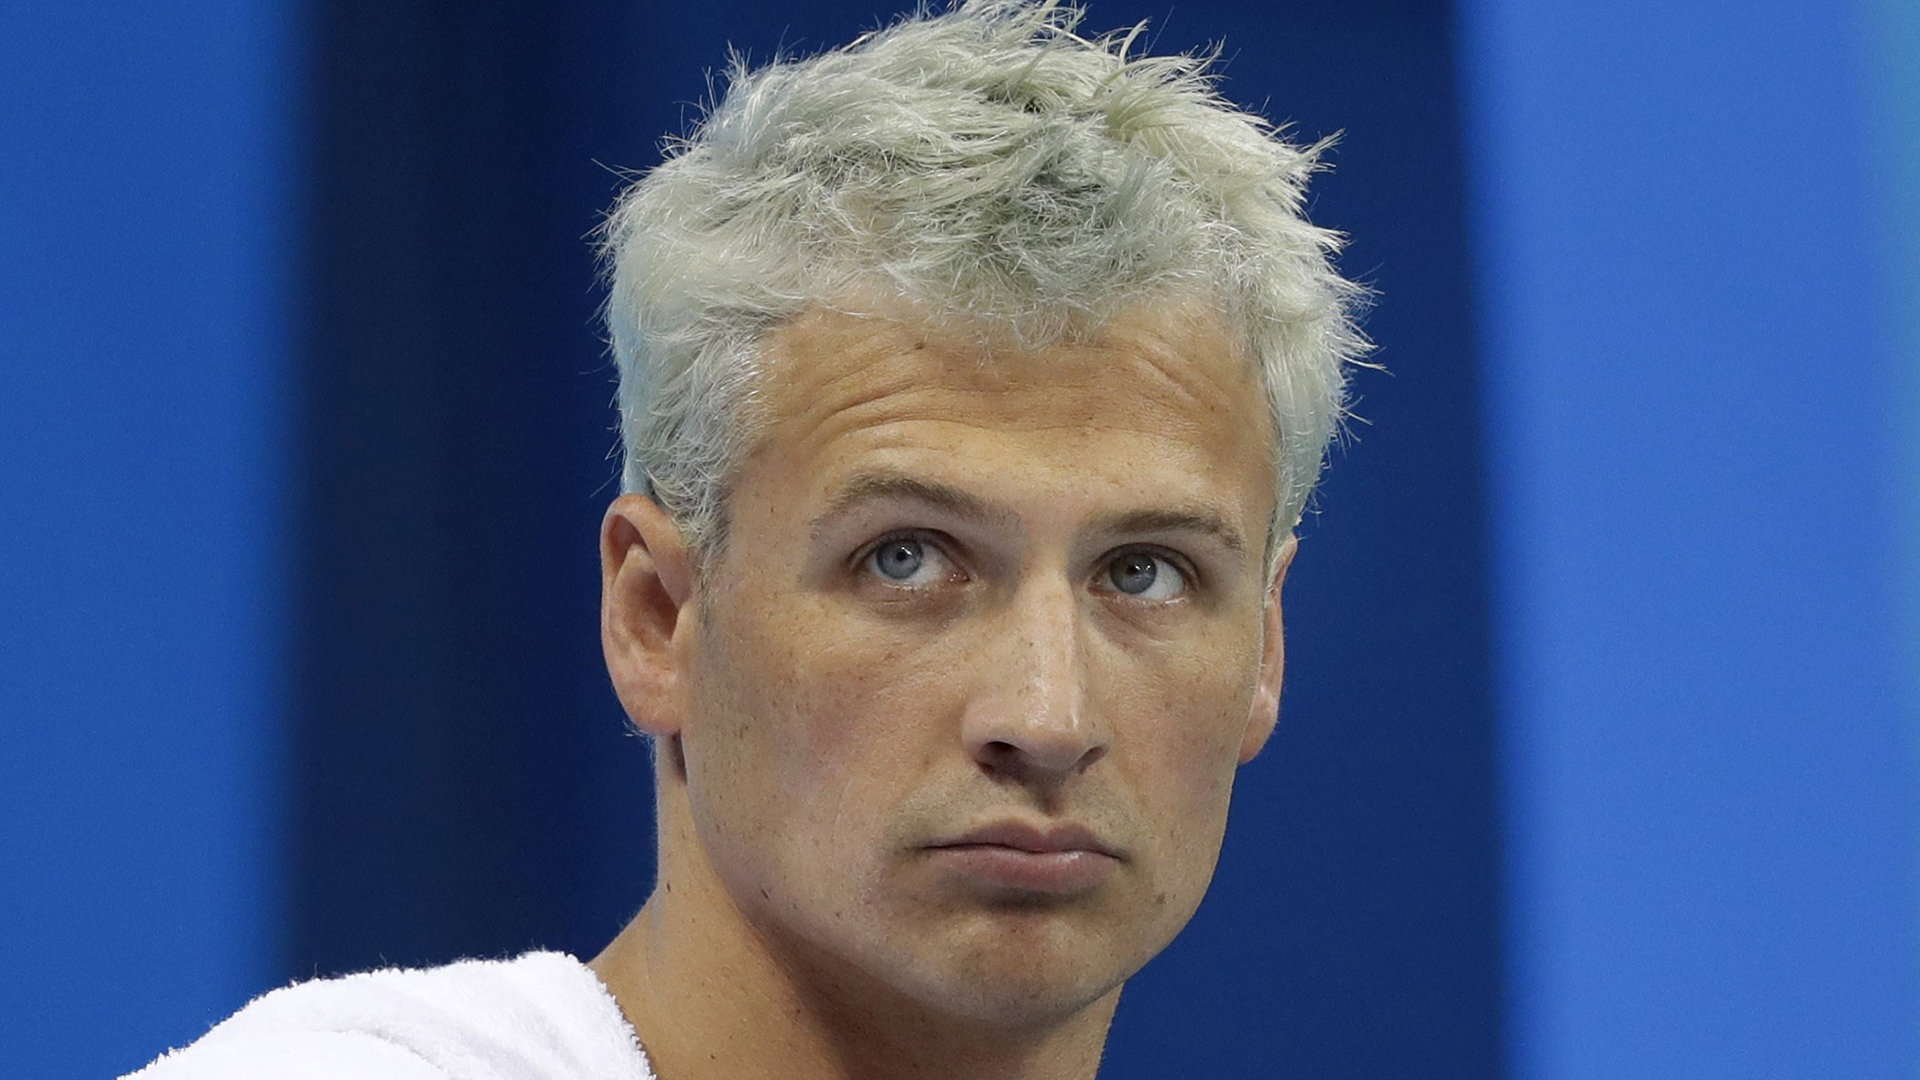 Ryan Lochte Defends Rio Robbery Account To Matt Lauer We Wouldnt Make This Story Up